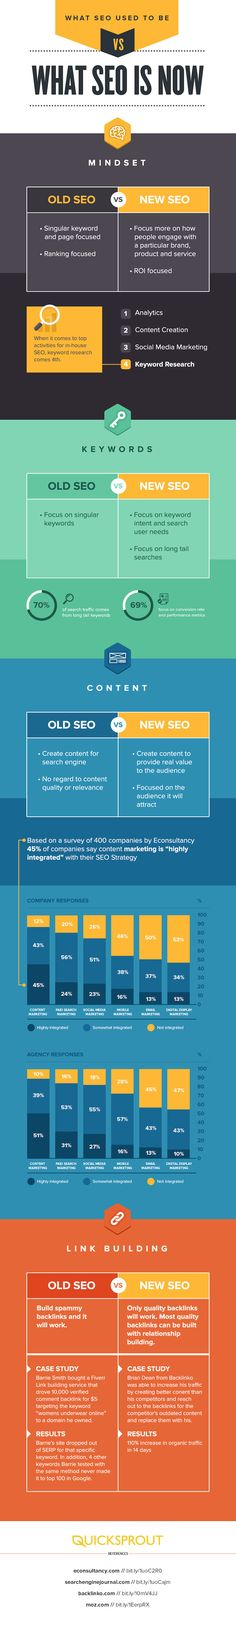 What SEO Used to Be Versus What #SEO Is Now - #infographic